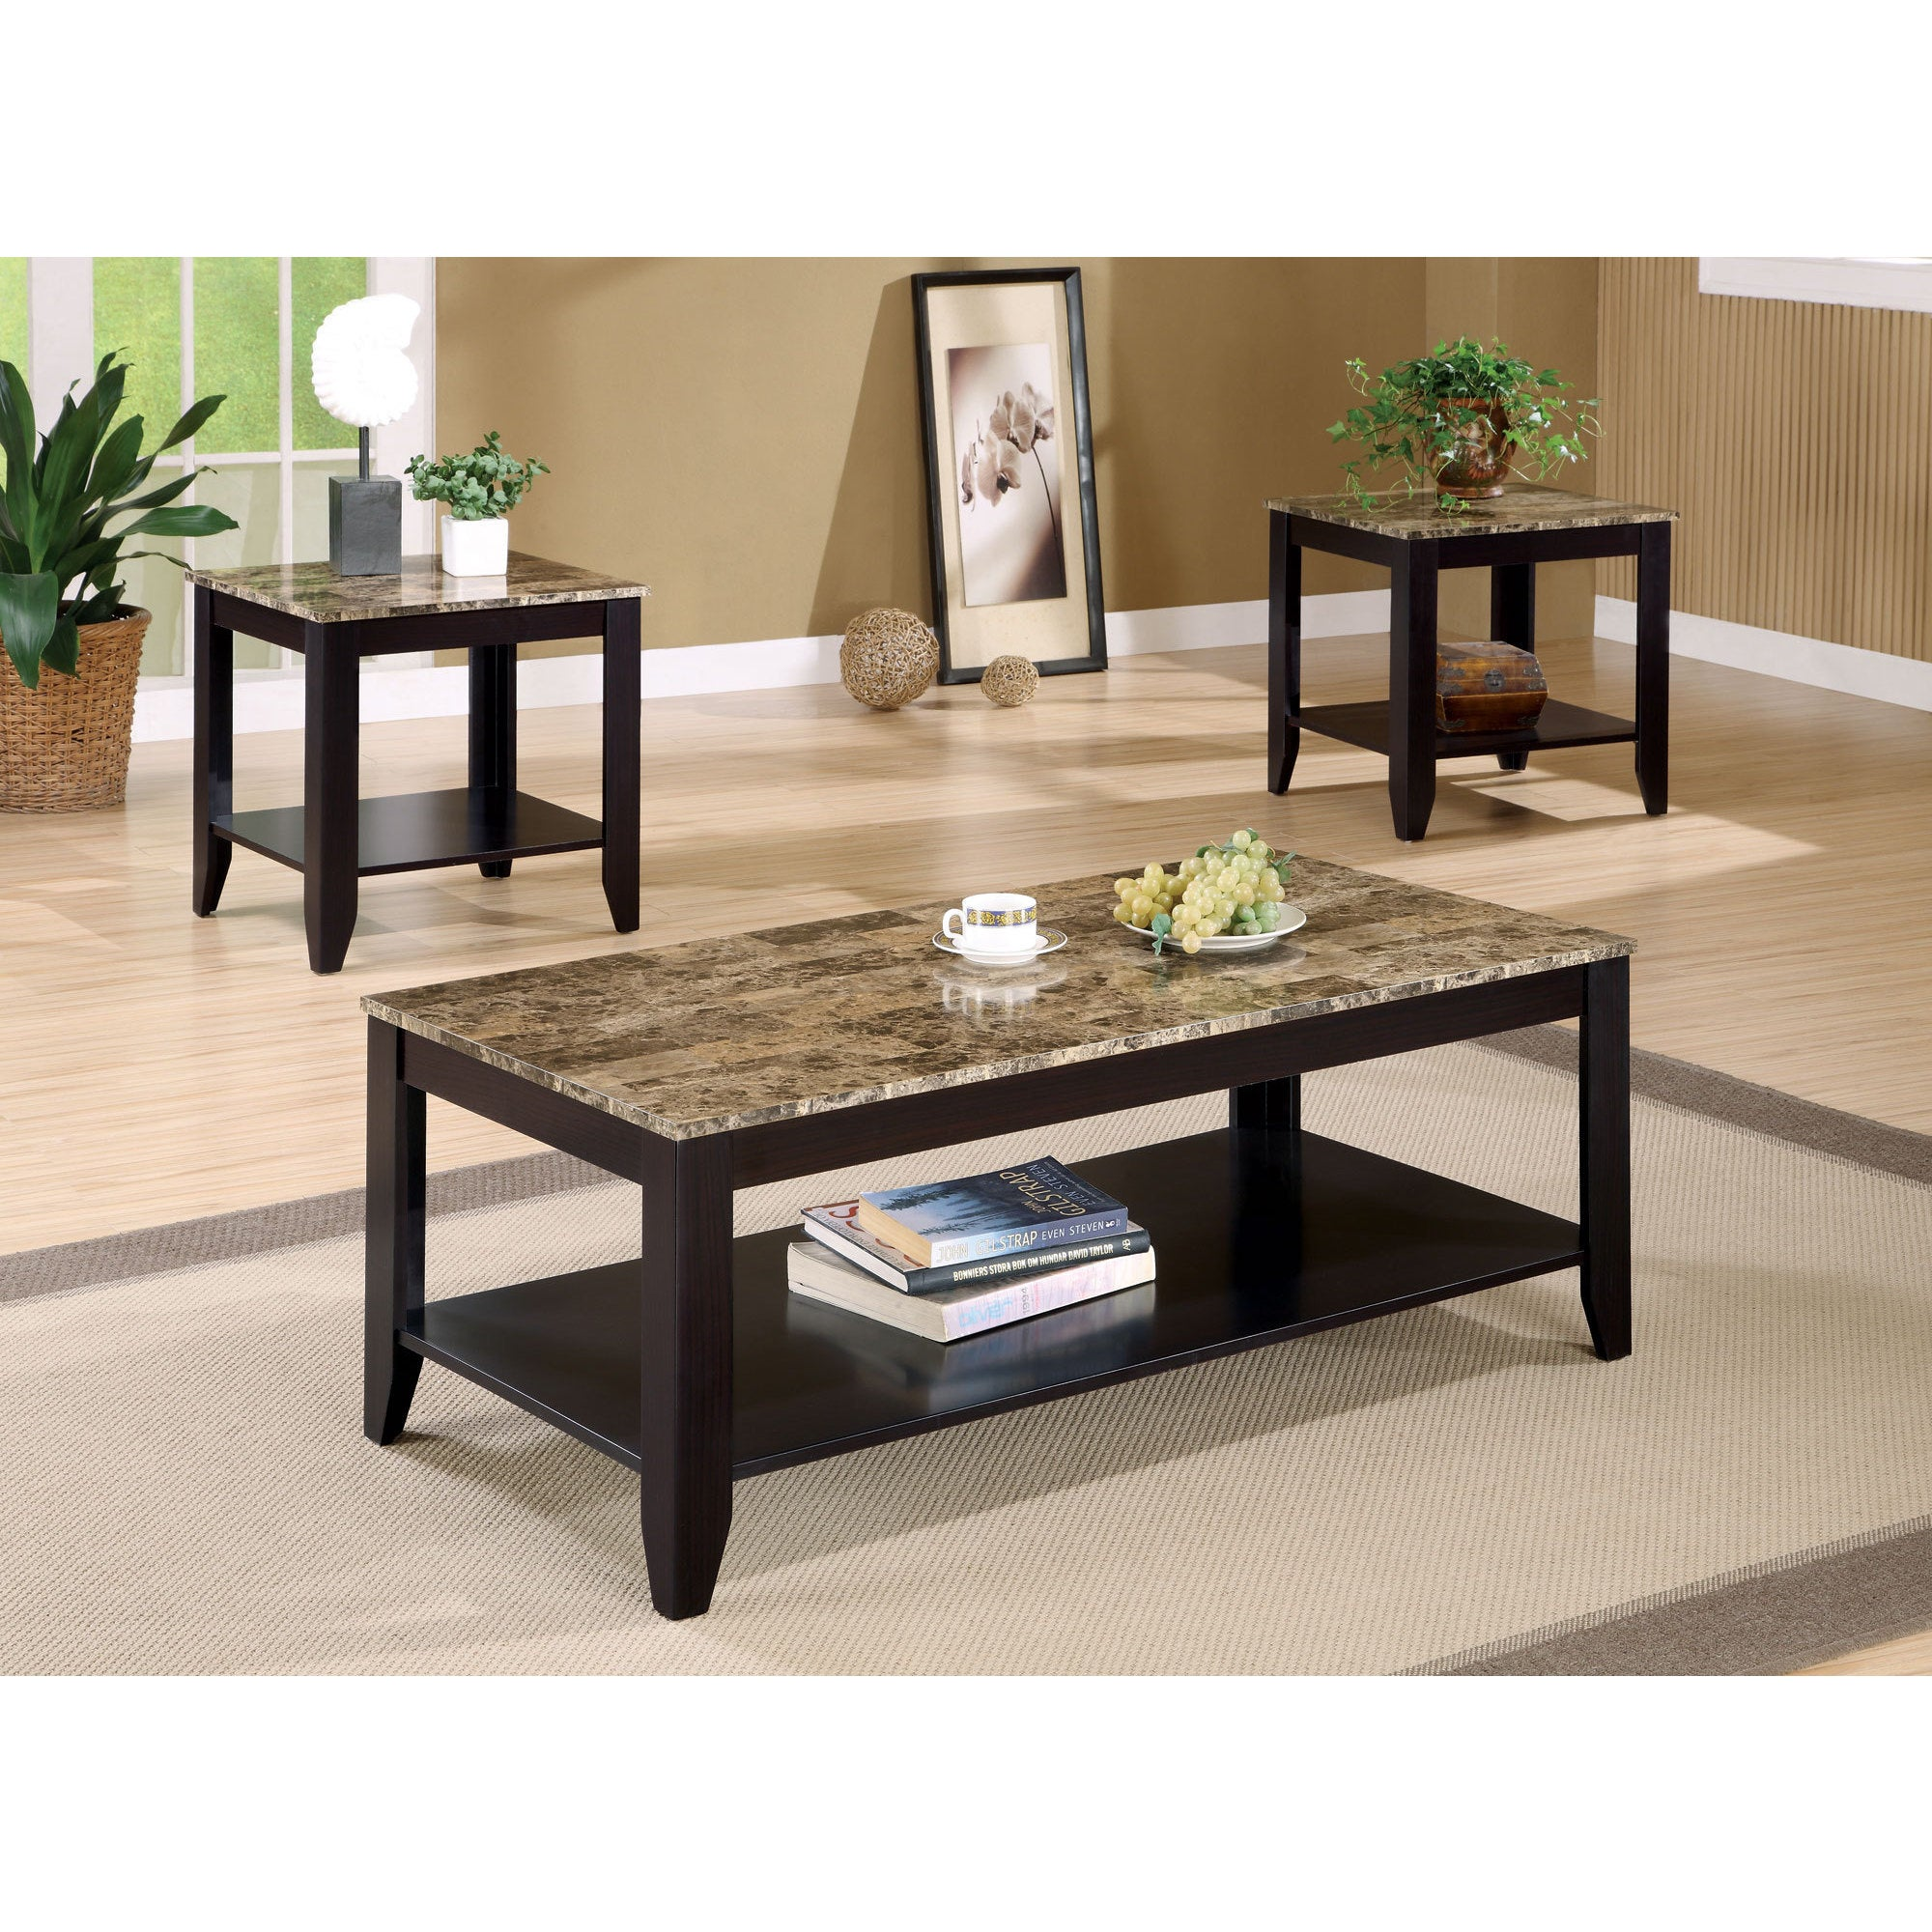 Cappuccino Marble Top 3 piece Promotional Table Set Free